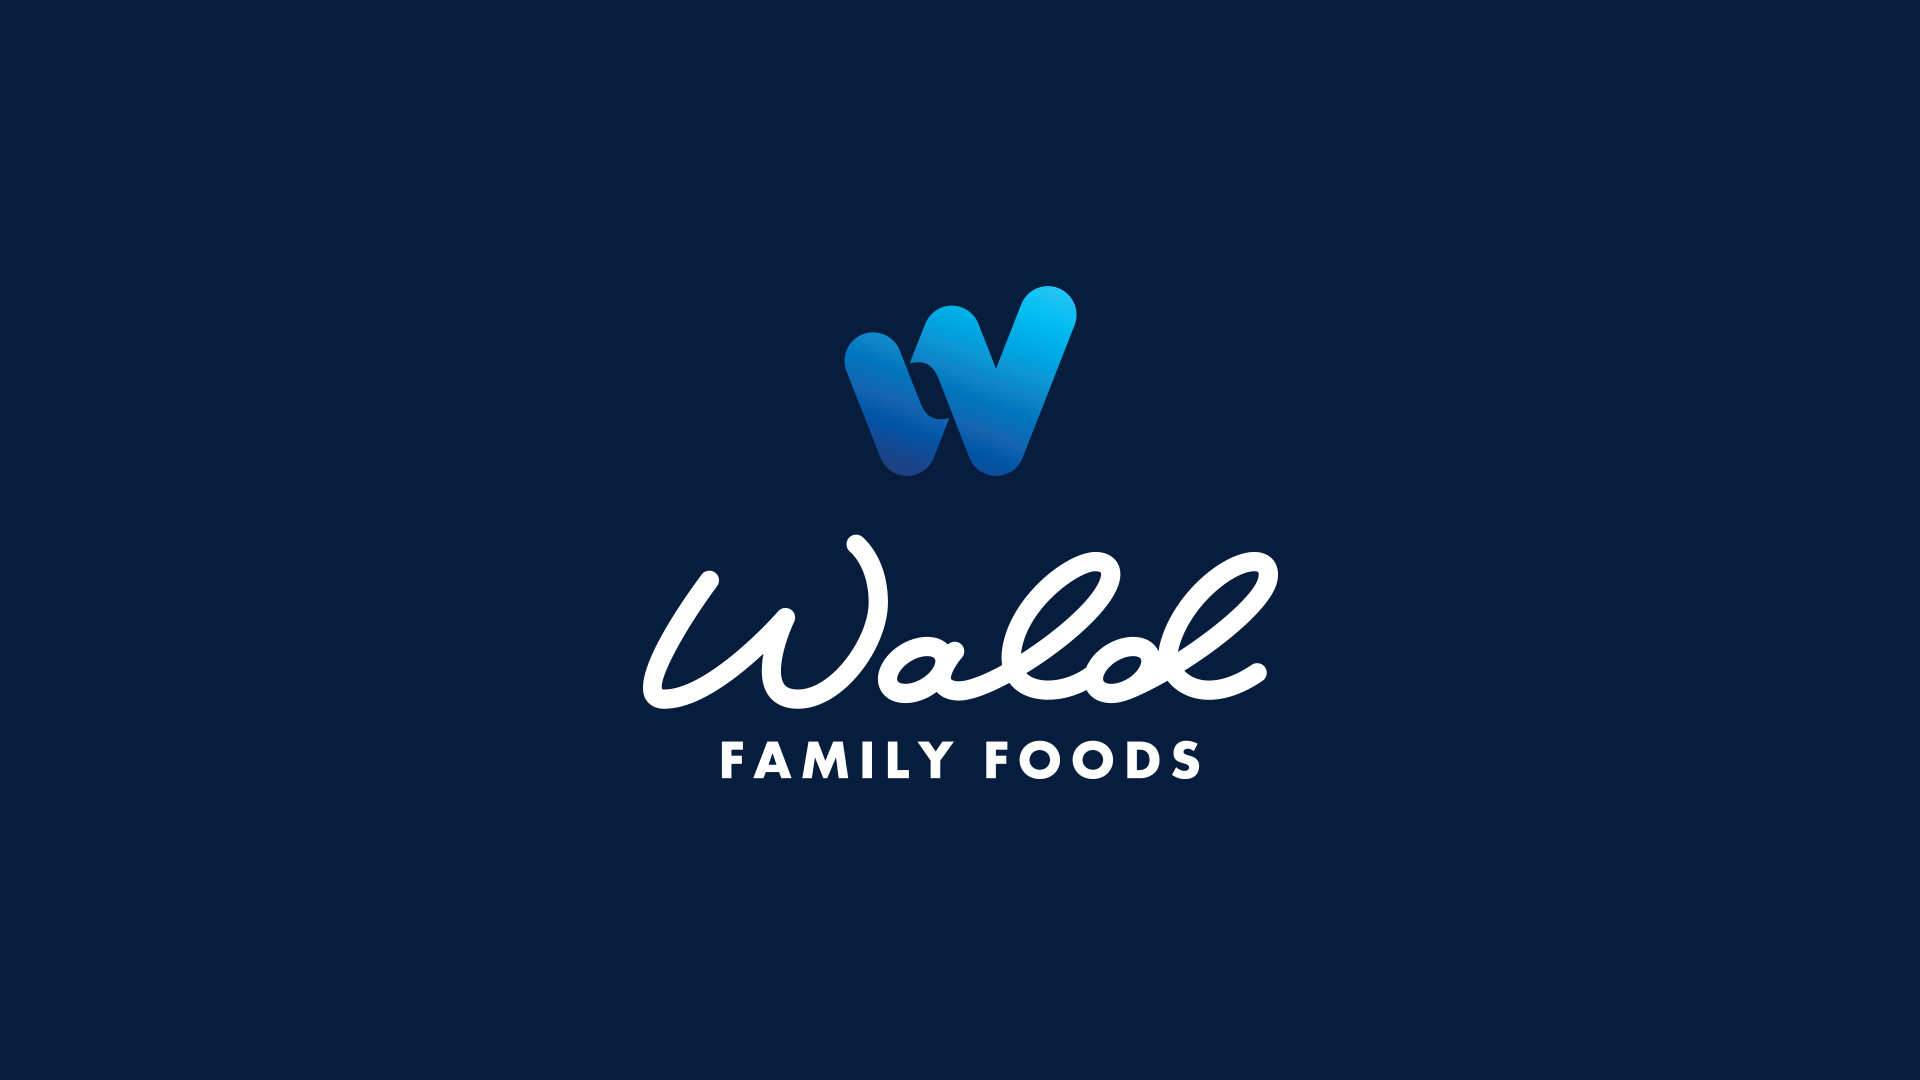 Wald Family Foods logo by Agency 877